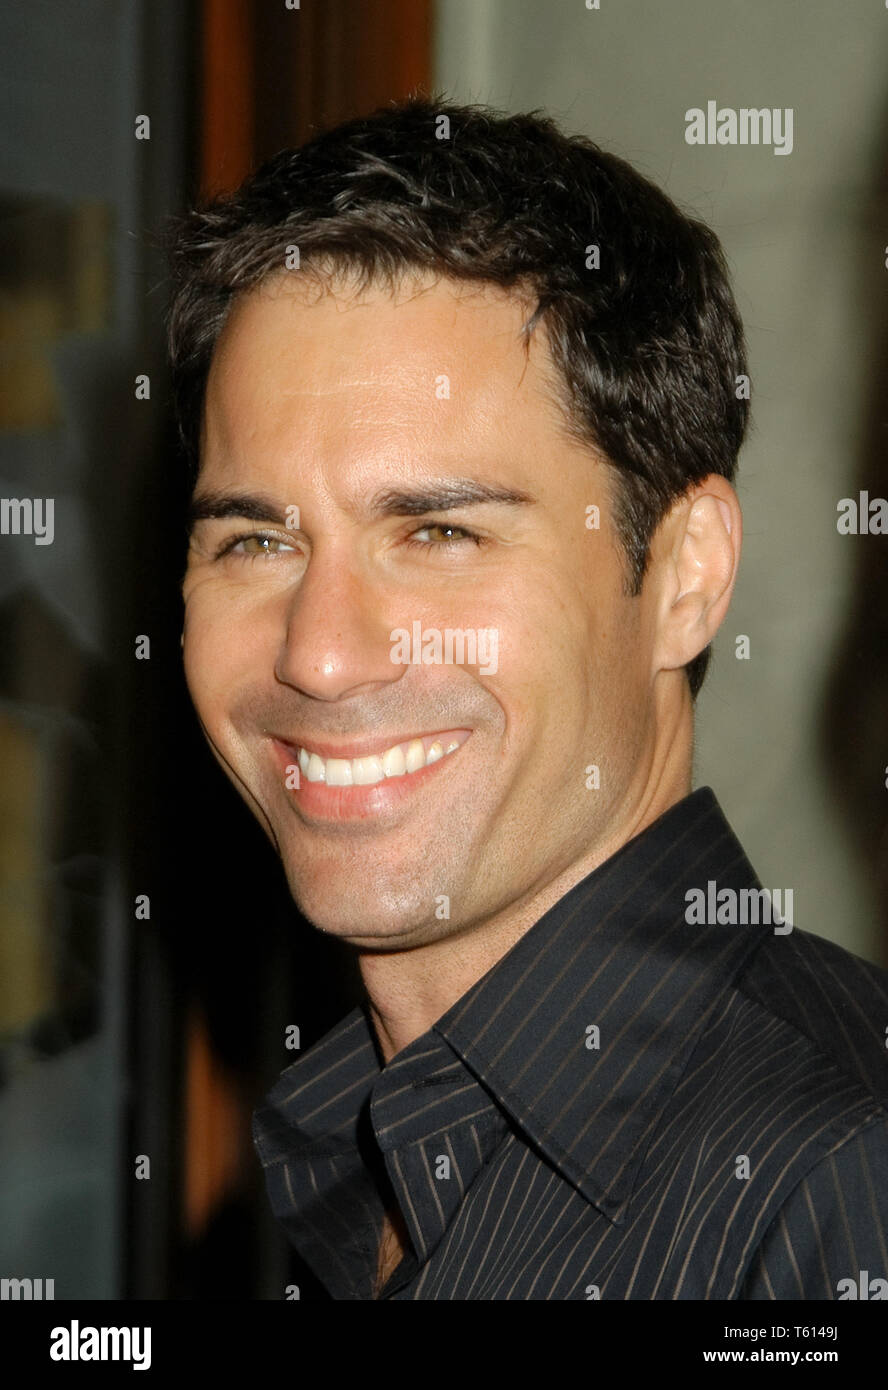 Eric McCormack at the Academy of Television Arts & Sciences dinner honoring the 55th Annual Primetime Emmy Awards Nominees for Outstanding Performing Talent at Spagos in Beverly Hills, CA. The event took place on Thursday, September 18, 2003. Photo by: SBM / PictureLux  File Reference # 33790_1881SBMPLX - Stock Image